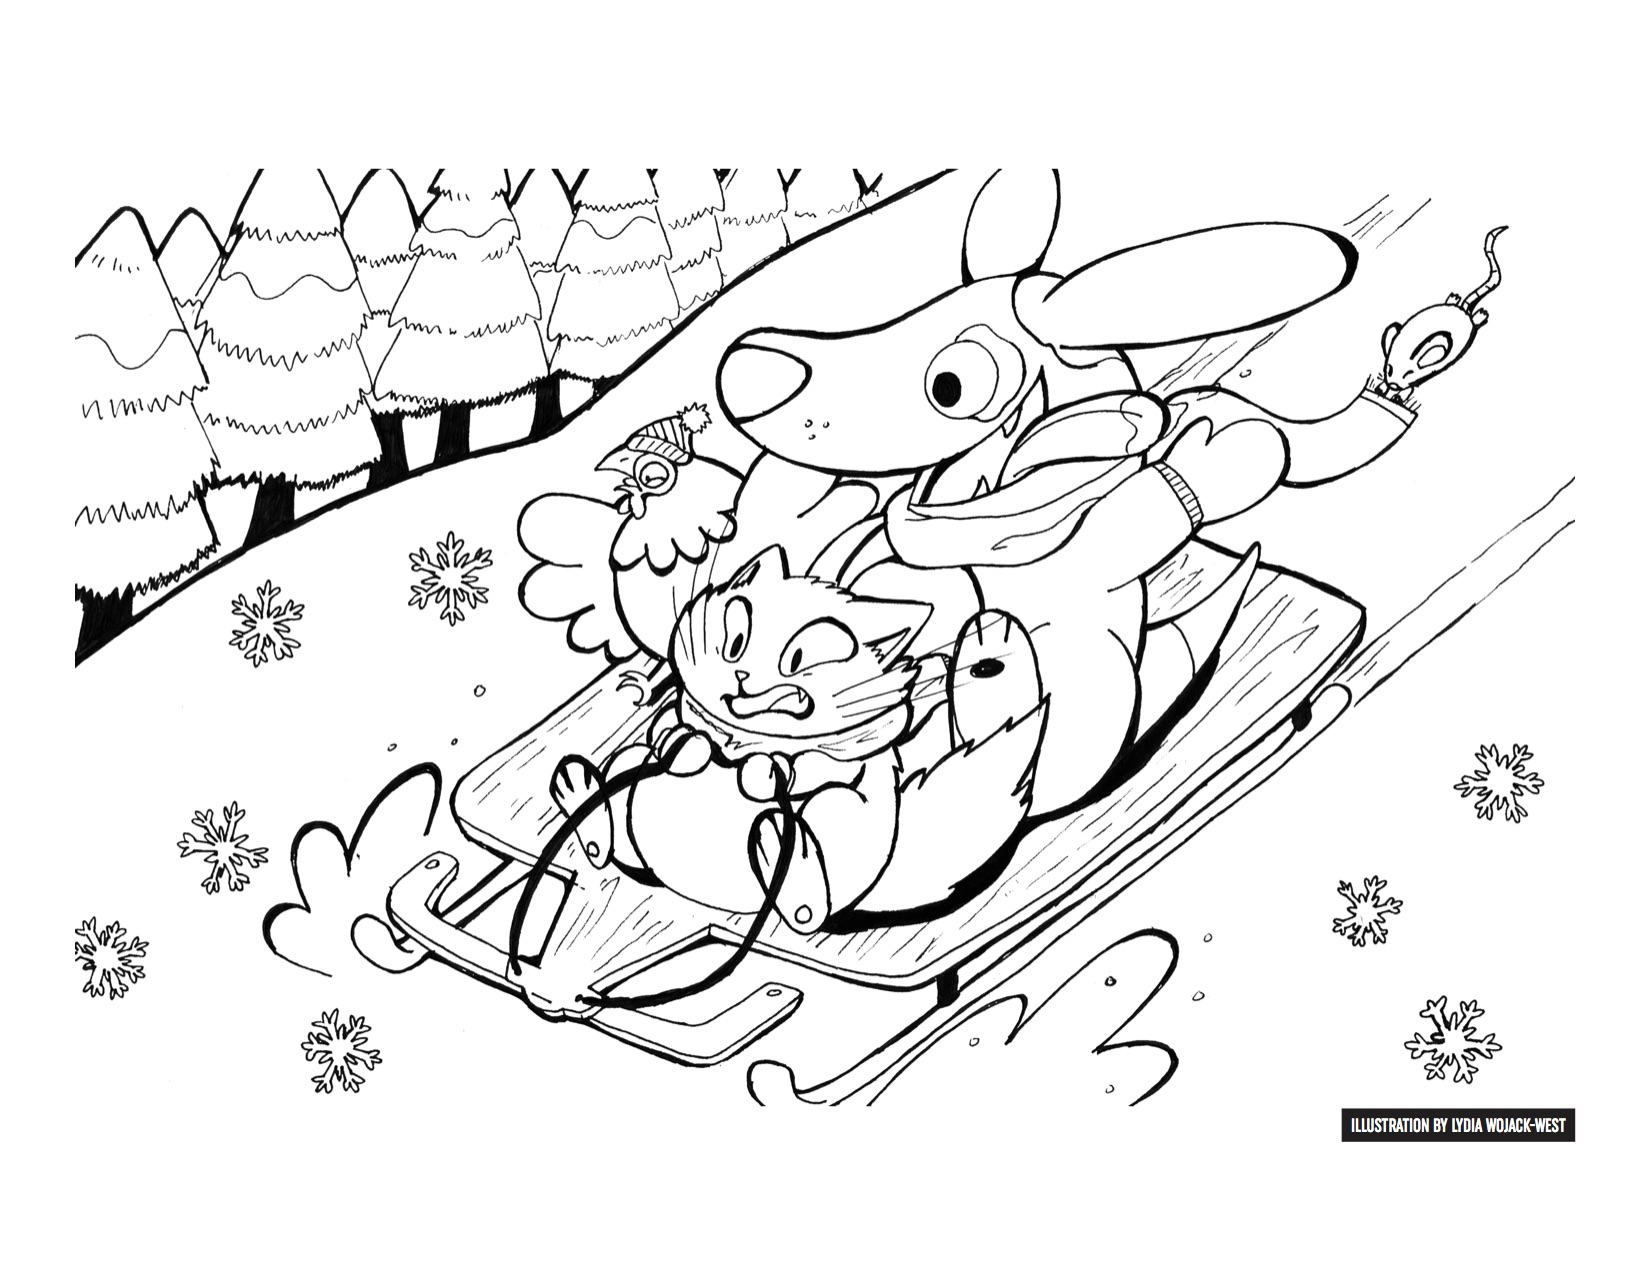 Enter the Vanguard's Holiday Coloring Contest! Win prizes